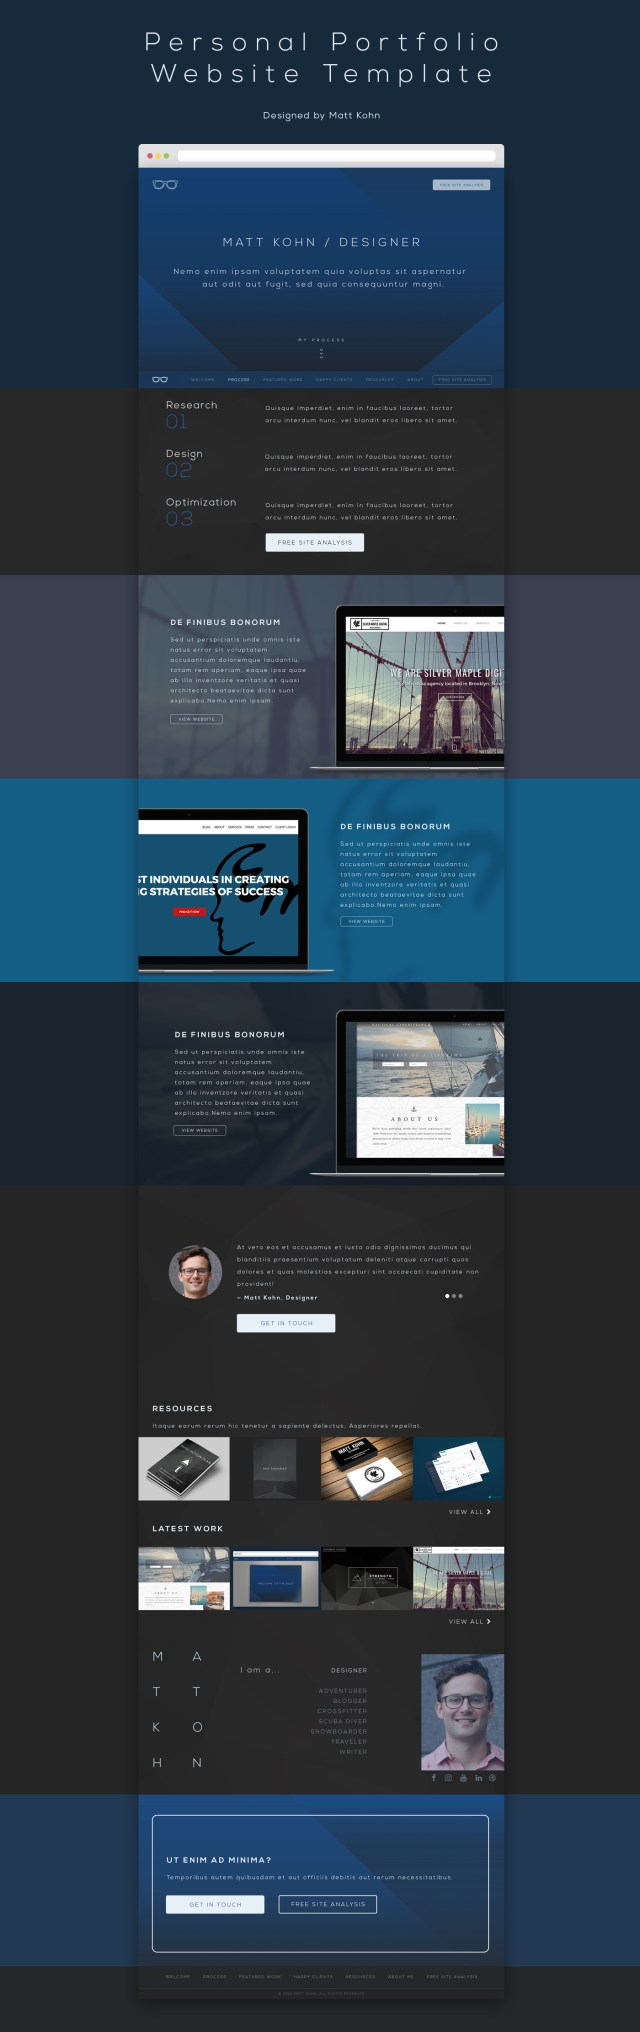 Free Personal Portfolio Website Template Free Design Resources